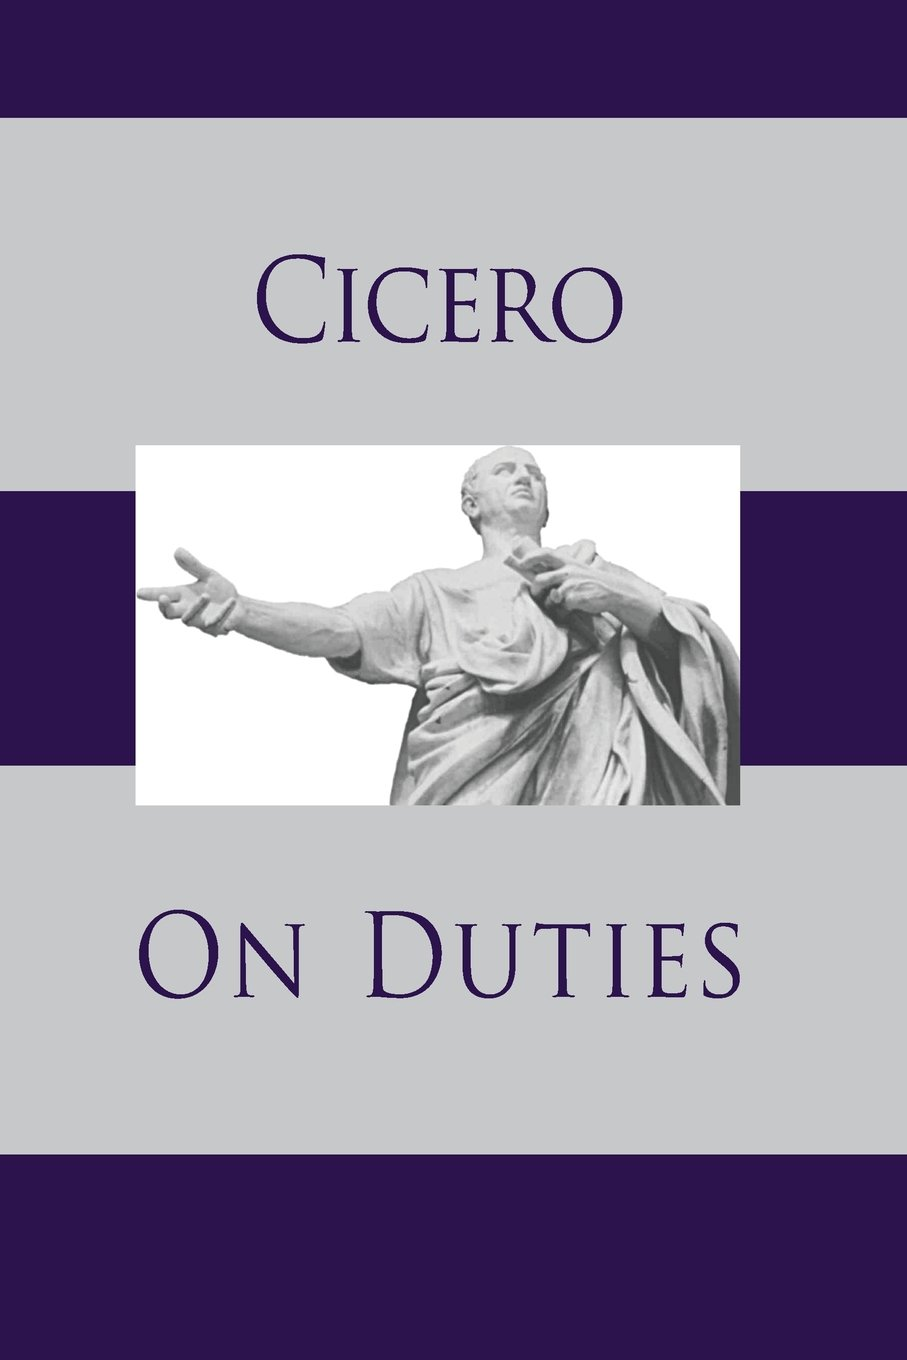 essay question from reading ciceros on duties The project gutenberg ebook of treatises on friendship and old age, by marcus tullius cicero this ebook is for the use of anyone anywhere at.